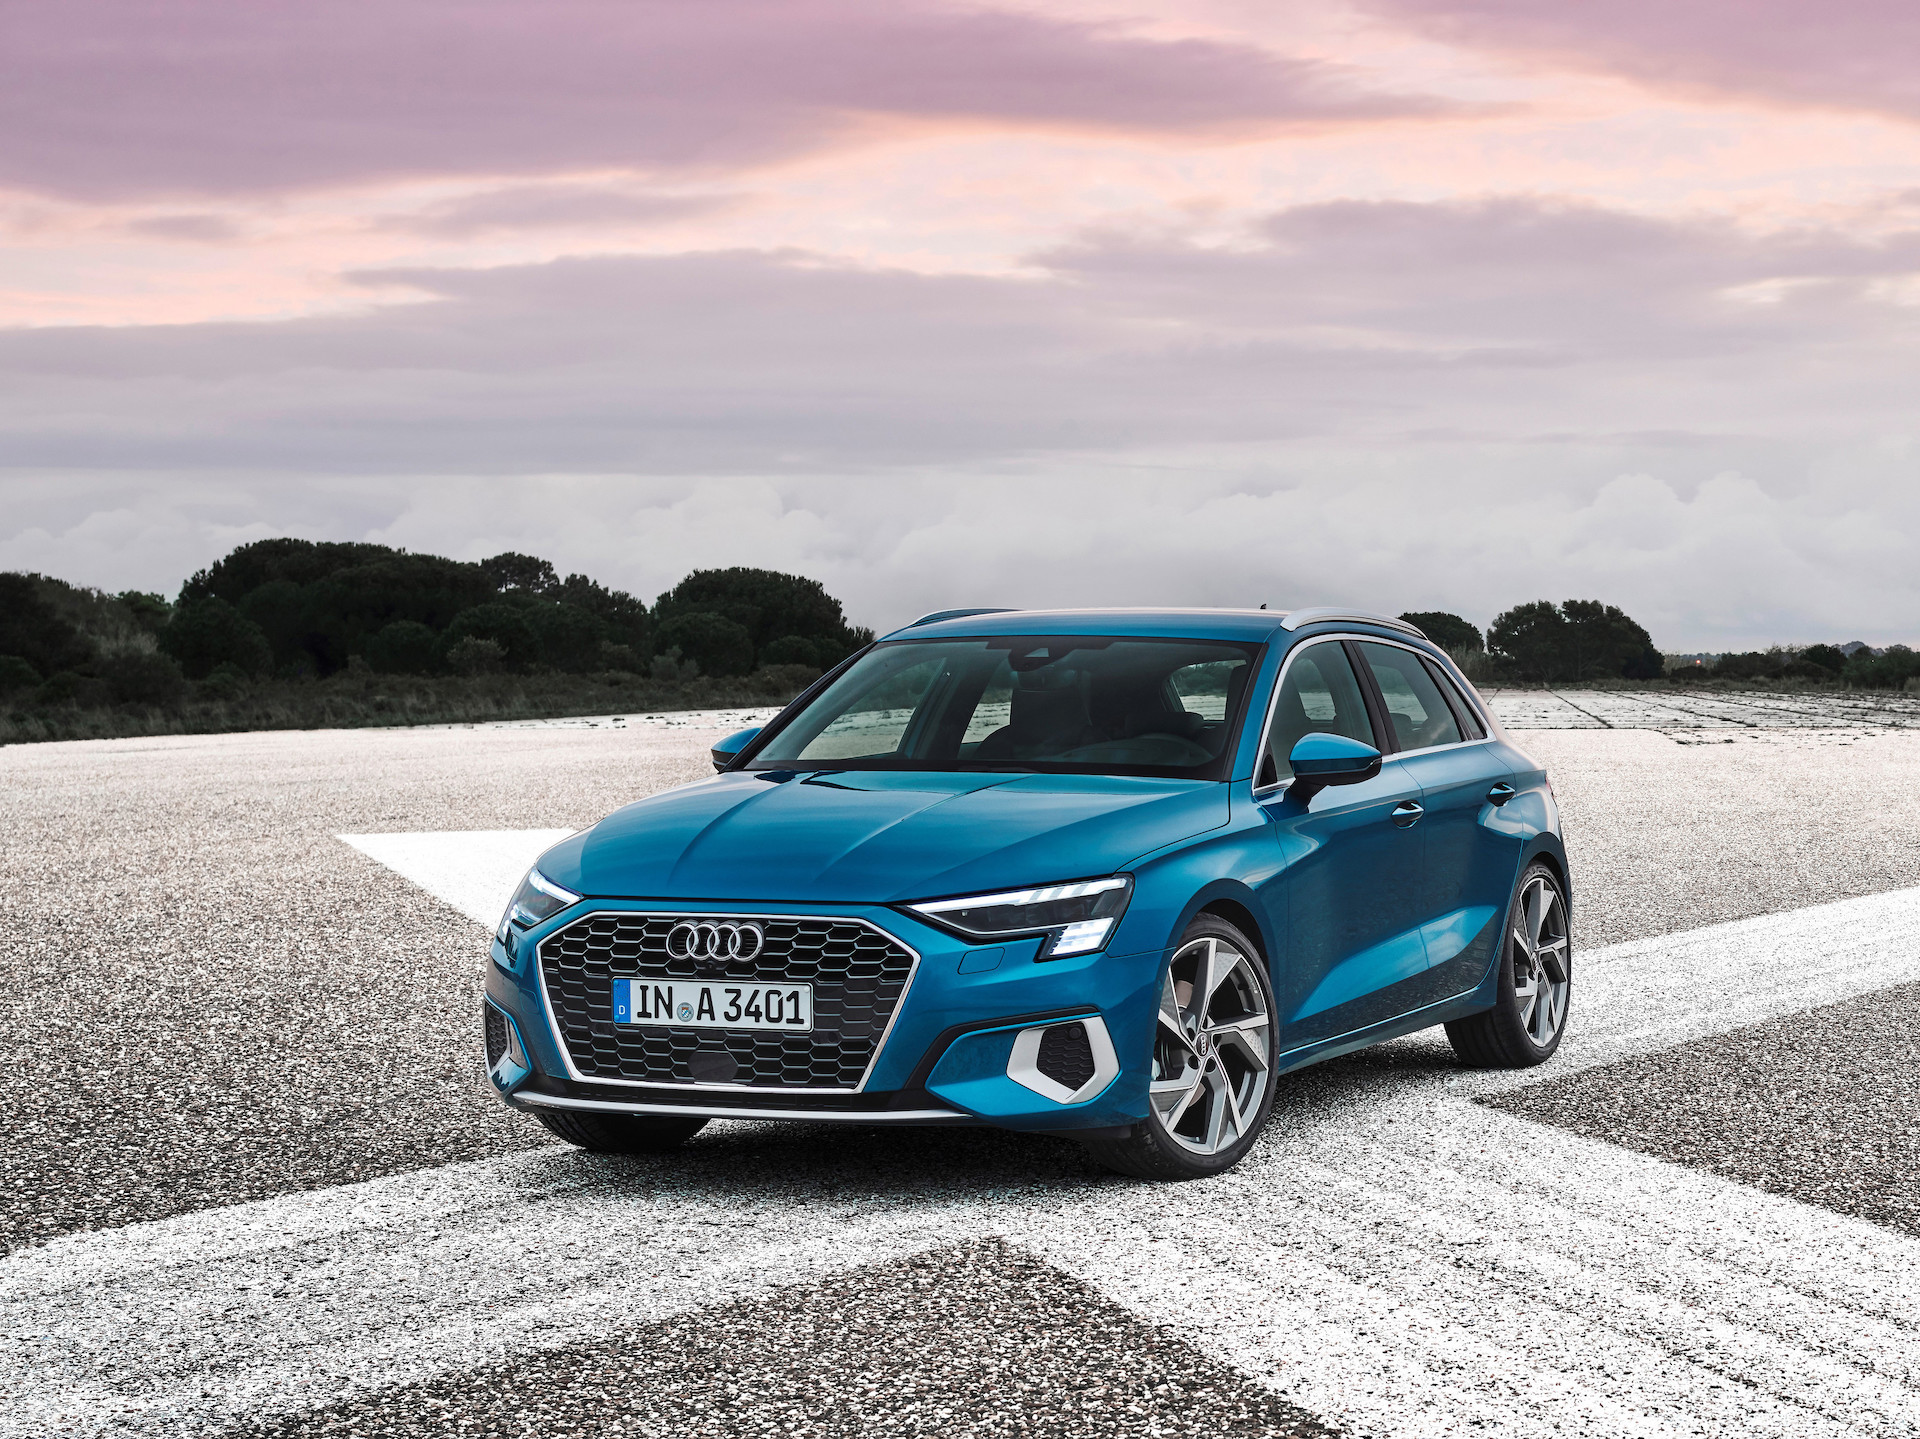 Fully Digital: This is the new Audi A3 Sportback 1